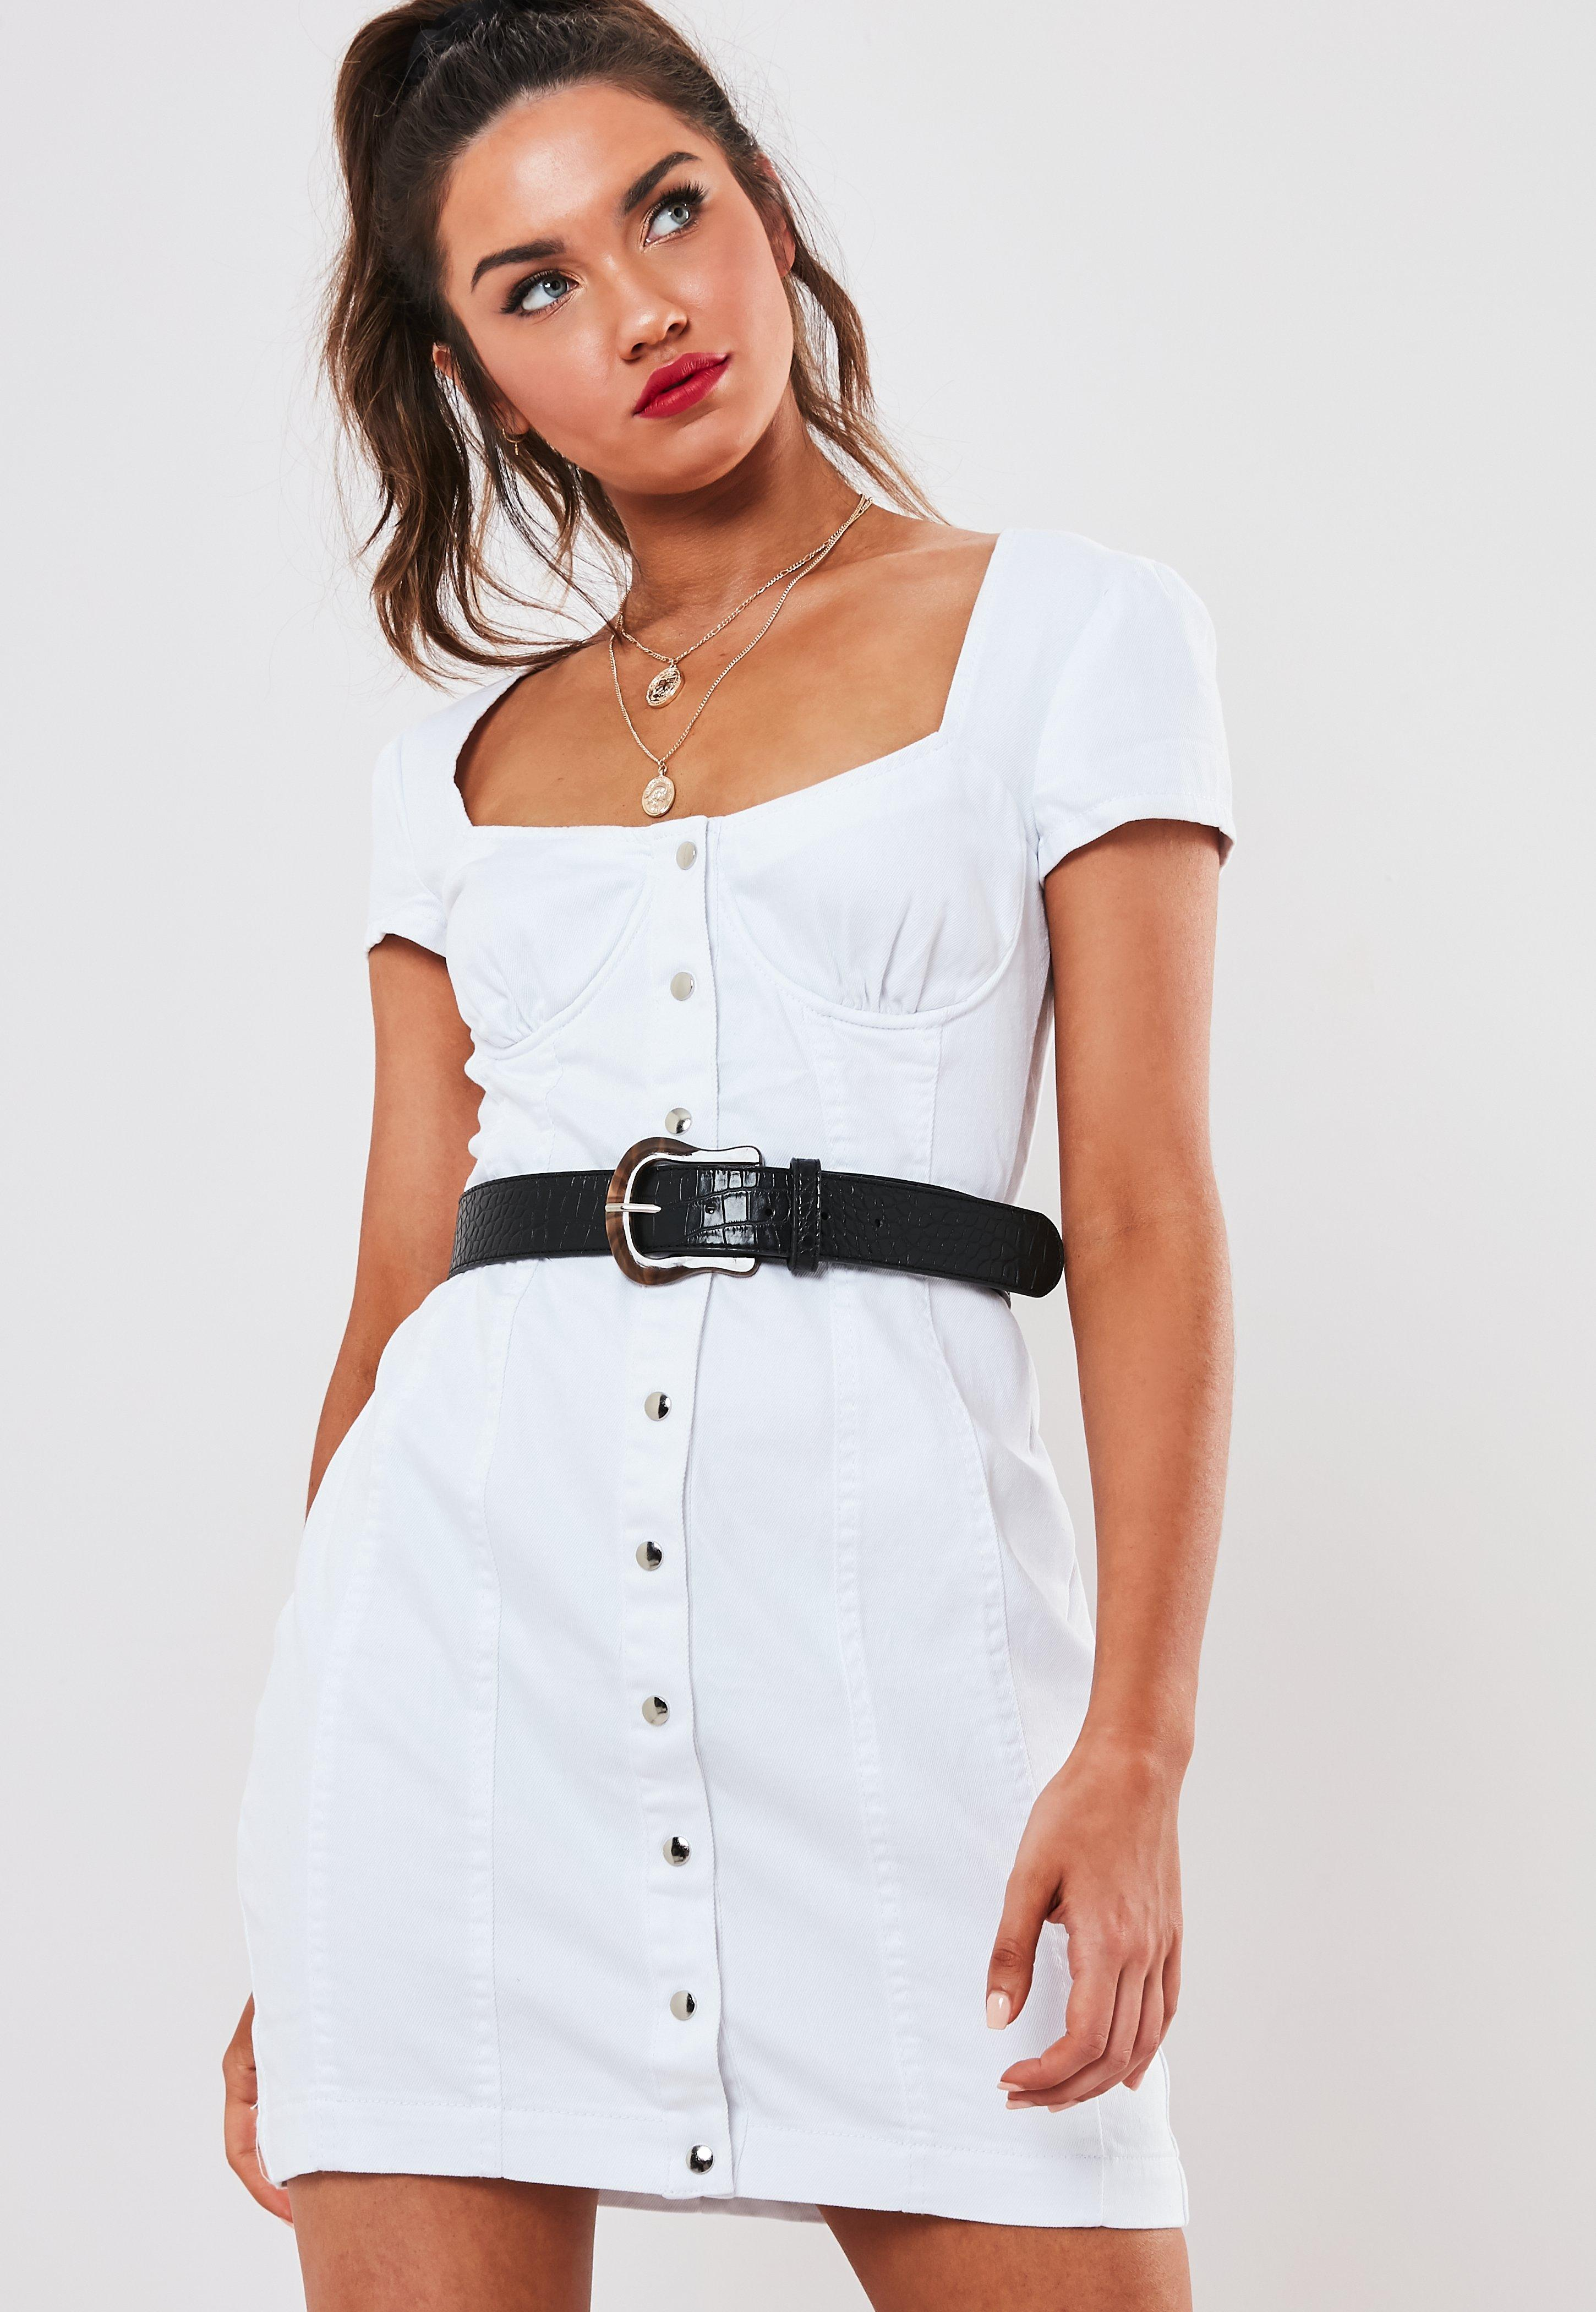 4af47b240714c Women's Belts - Corset, Leather & Suede Belts - Missguided